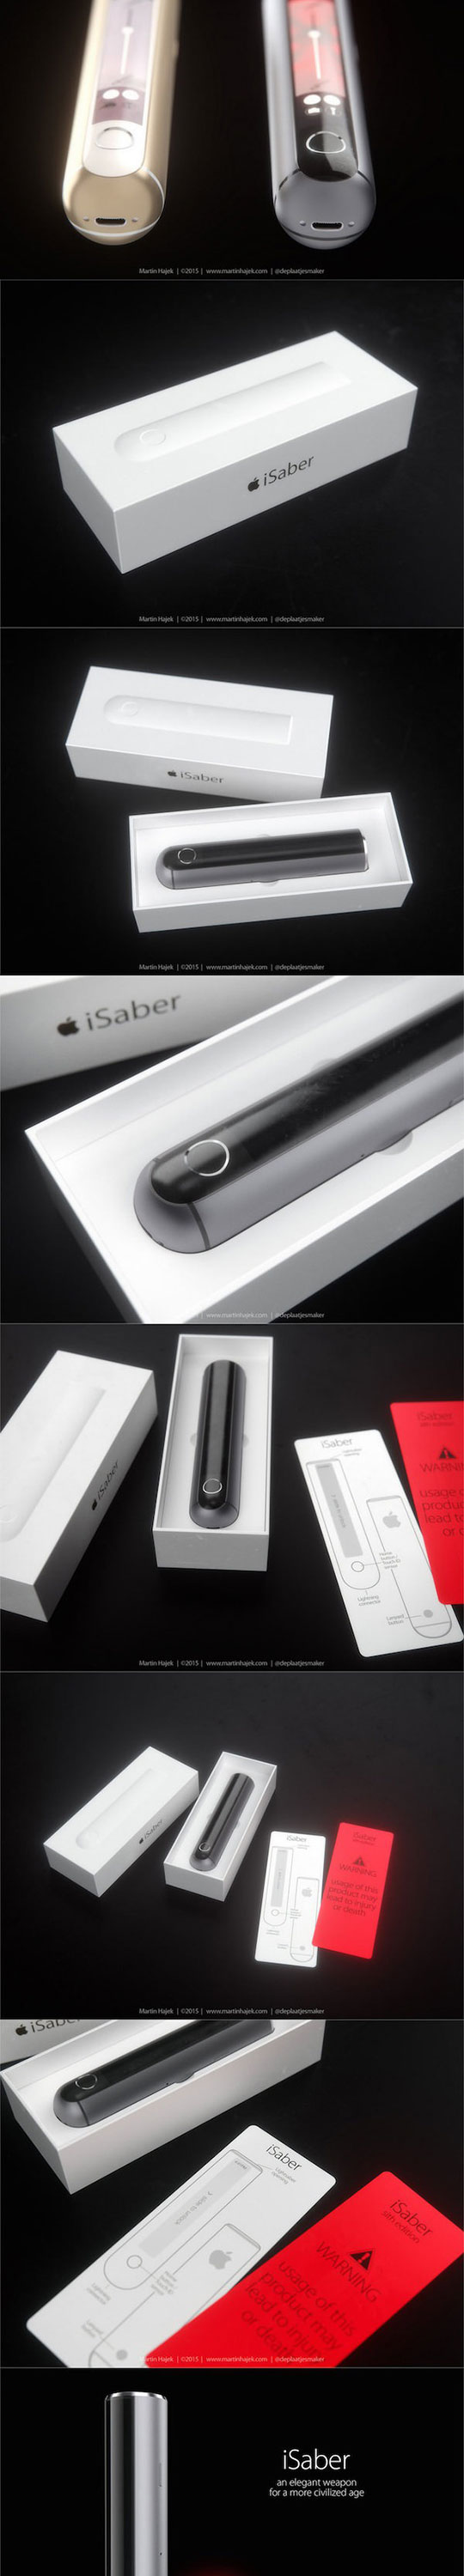 3cool-apple-lightsaber-isaber-prototype